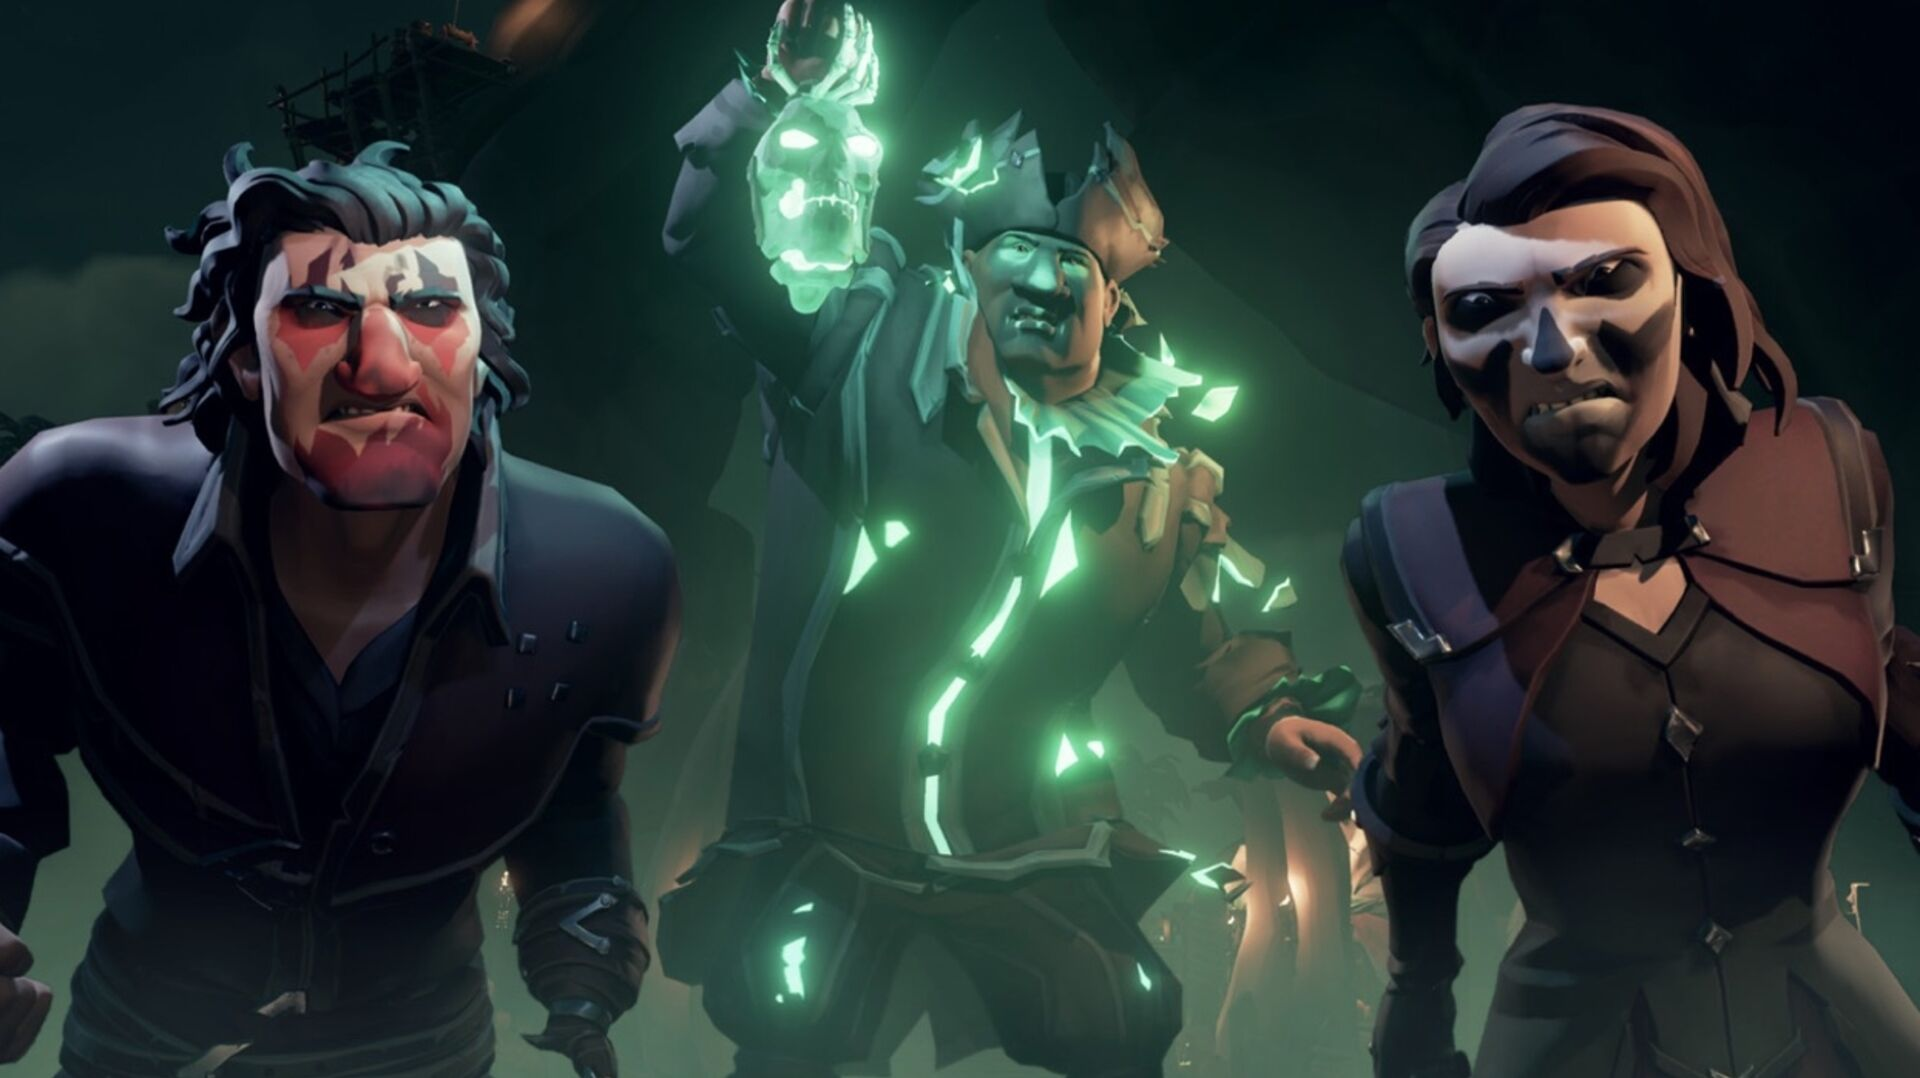 Sea of Thieves' spooky Festival of the Damned event is